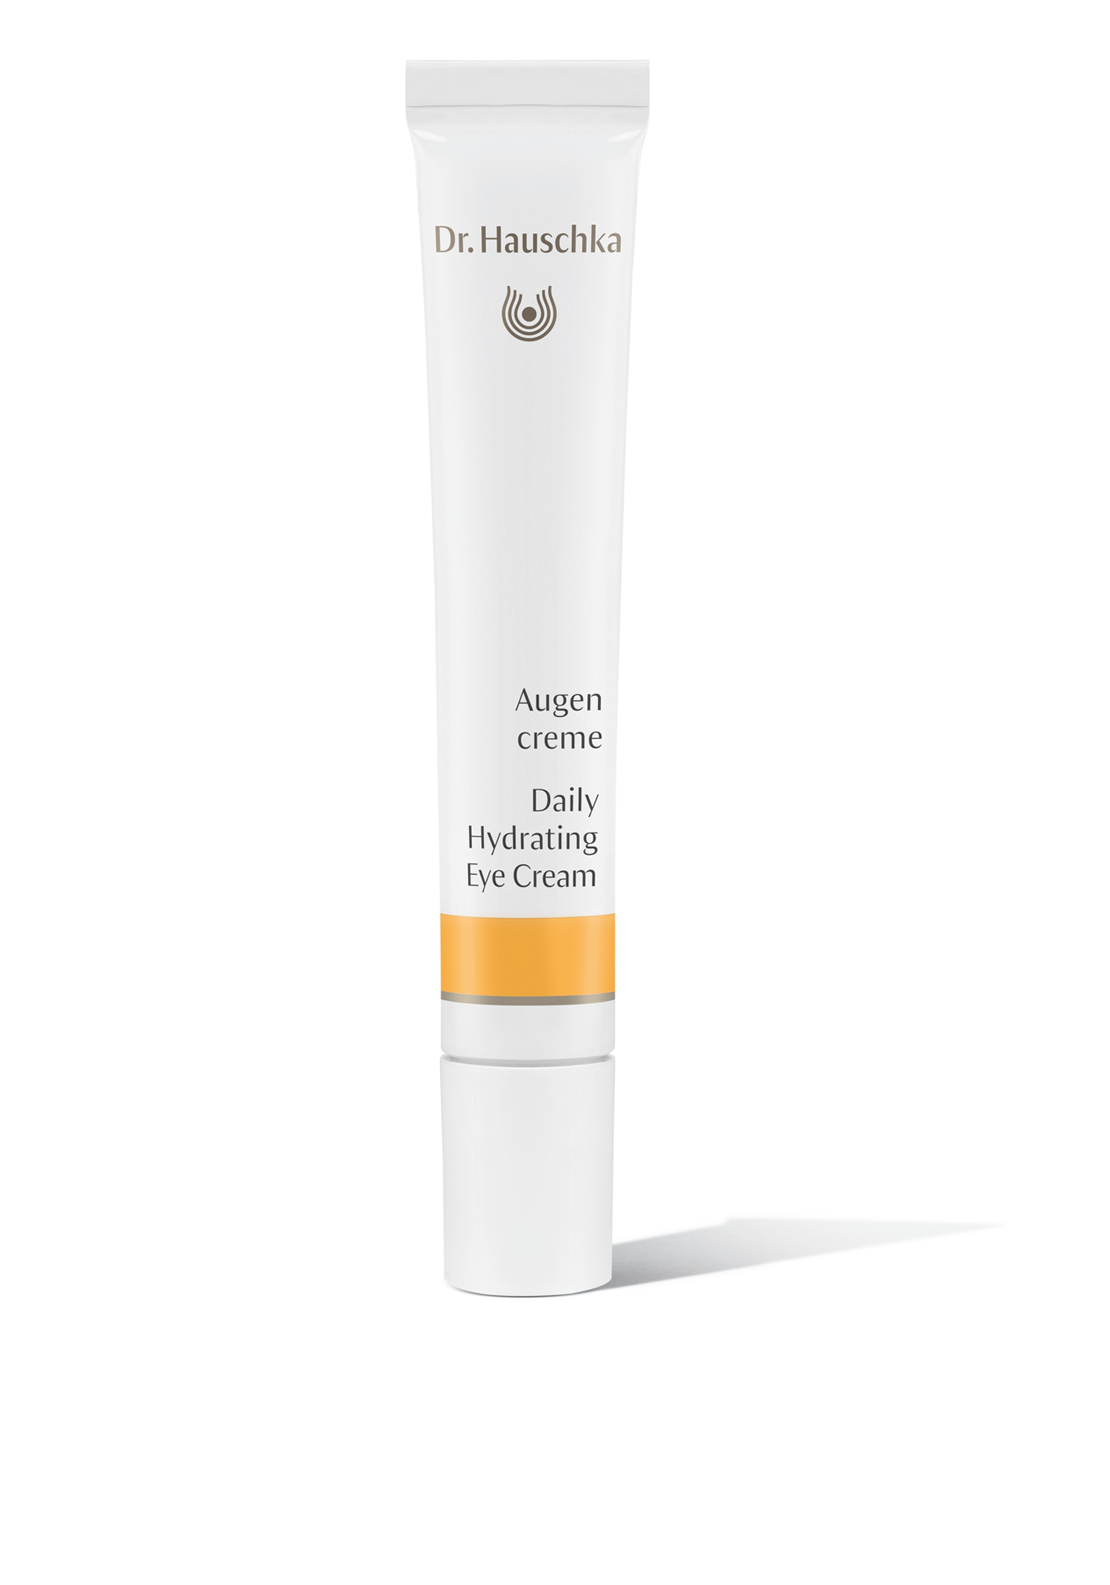 Dr. Hauschka Daily Hydrating Eye Cream, 12.5ml